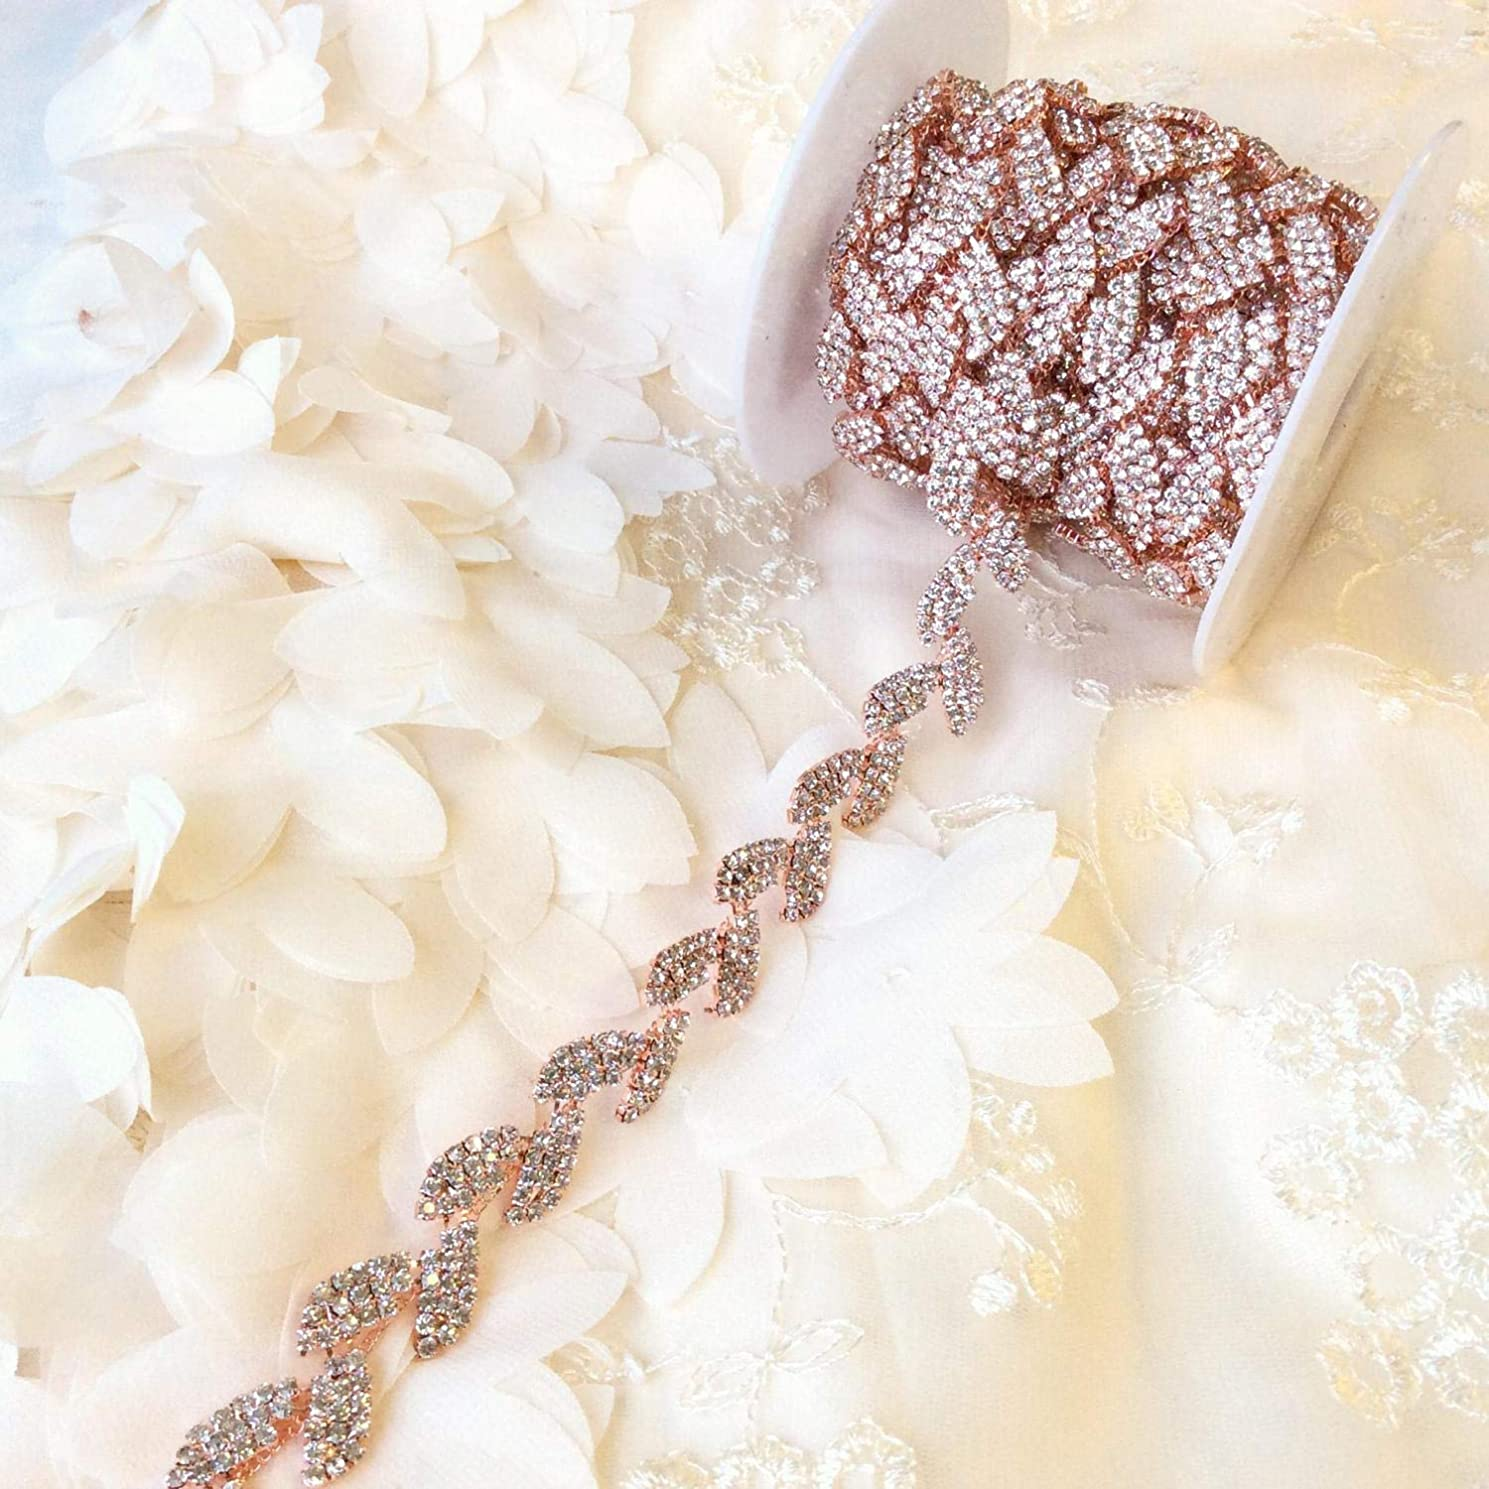 Crystal Rhinestone Trim by The Yard -Bridal Trim - Thin Crystal Trim - Rhinestone Chain Applique (Rose Gold Metal)